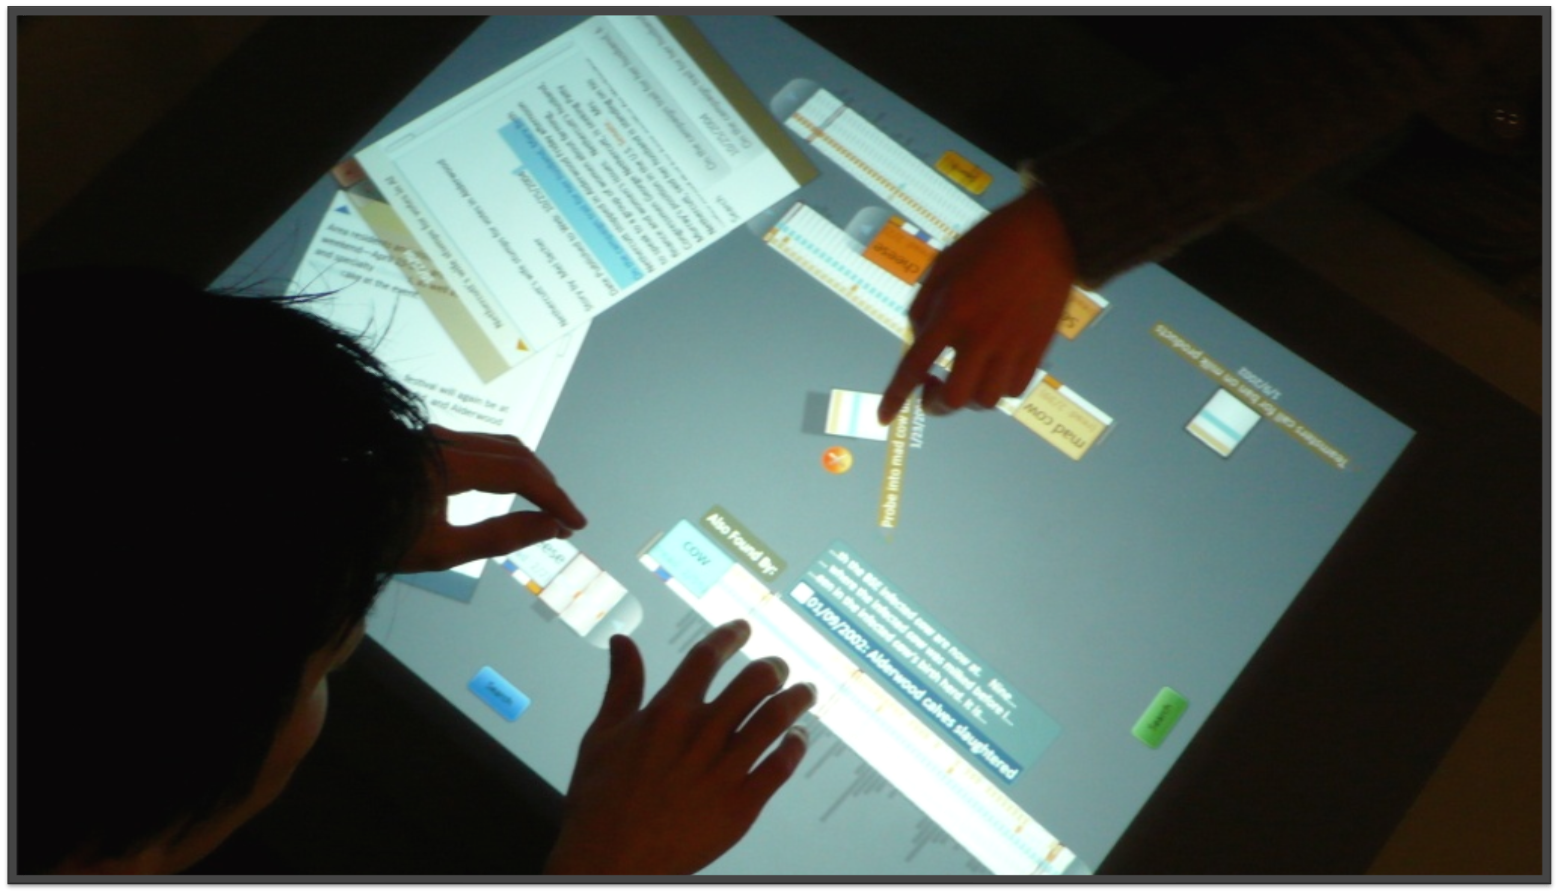 The Cambiera system in action: four hands on a tabletop